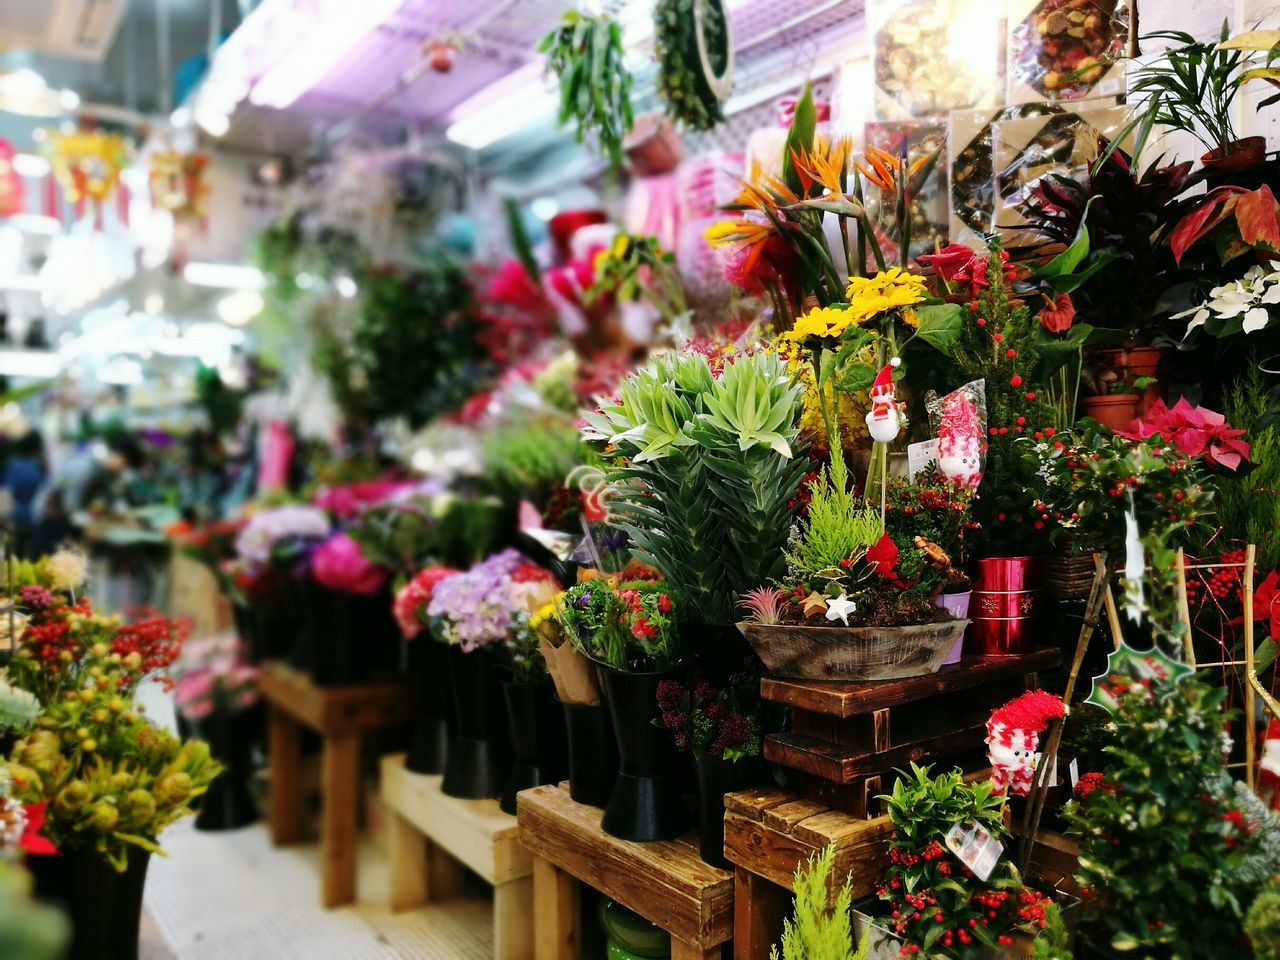 Last minutes prep for Christmas Flower Shop Multi Colored Market Stall Flower Market Retail  Freshness Asian Cities Art Is Everywhere EyeEm Gallery Leica Lens HuaweiP9 Embrace Urban Life Wandering Around Aimlessly EyeEm Best Shots Photograph Like Painting Wanderer Leicalens Wanderlust Street Photography On The Street Huaweiphotography Huawei p9 Christmas Is In The Air Christmas Christmas Decoration